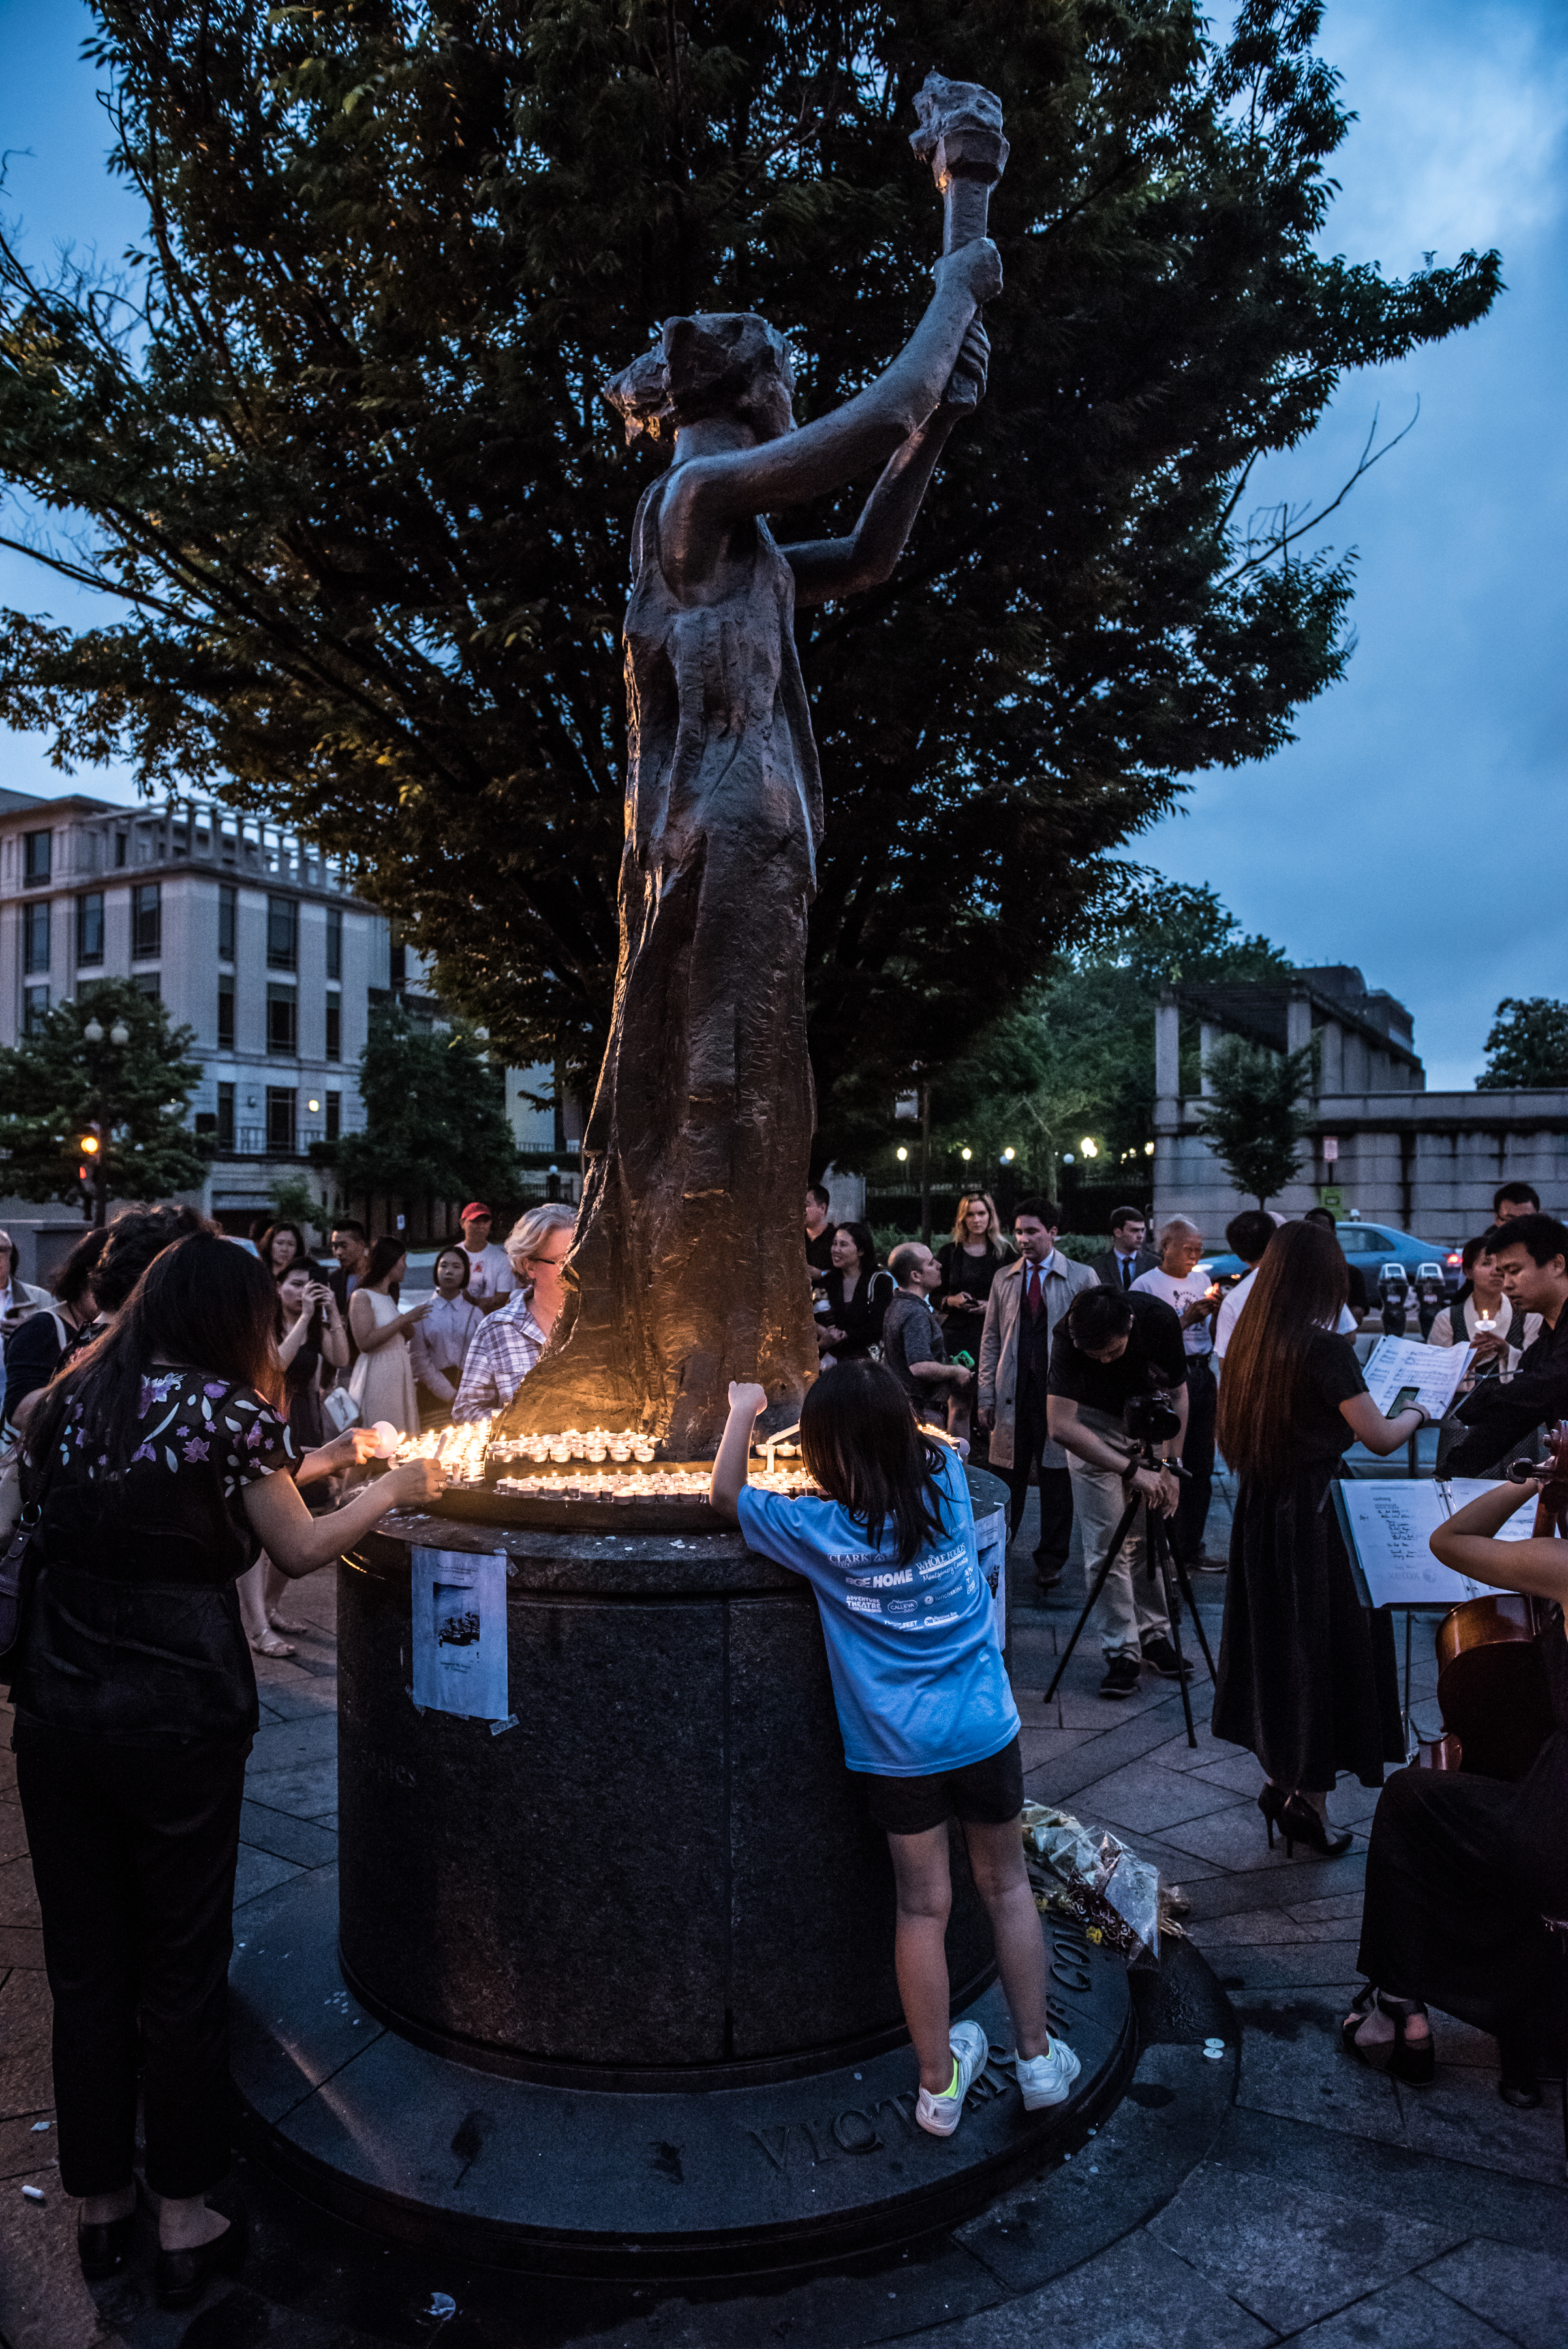 Dissidents, family, and friends gather at the Victims of Communism Memorial in Washington, D.C. for a vigil commemorating the Tiananmen Square Massacre.